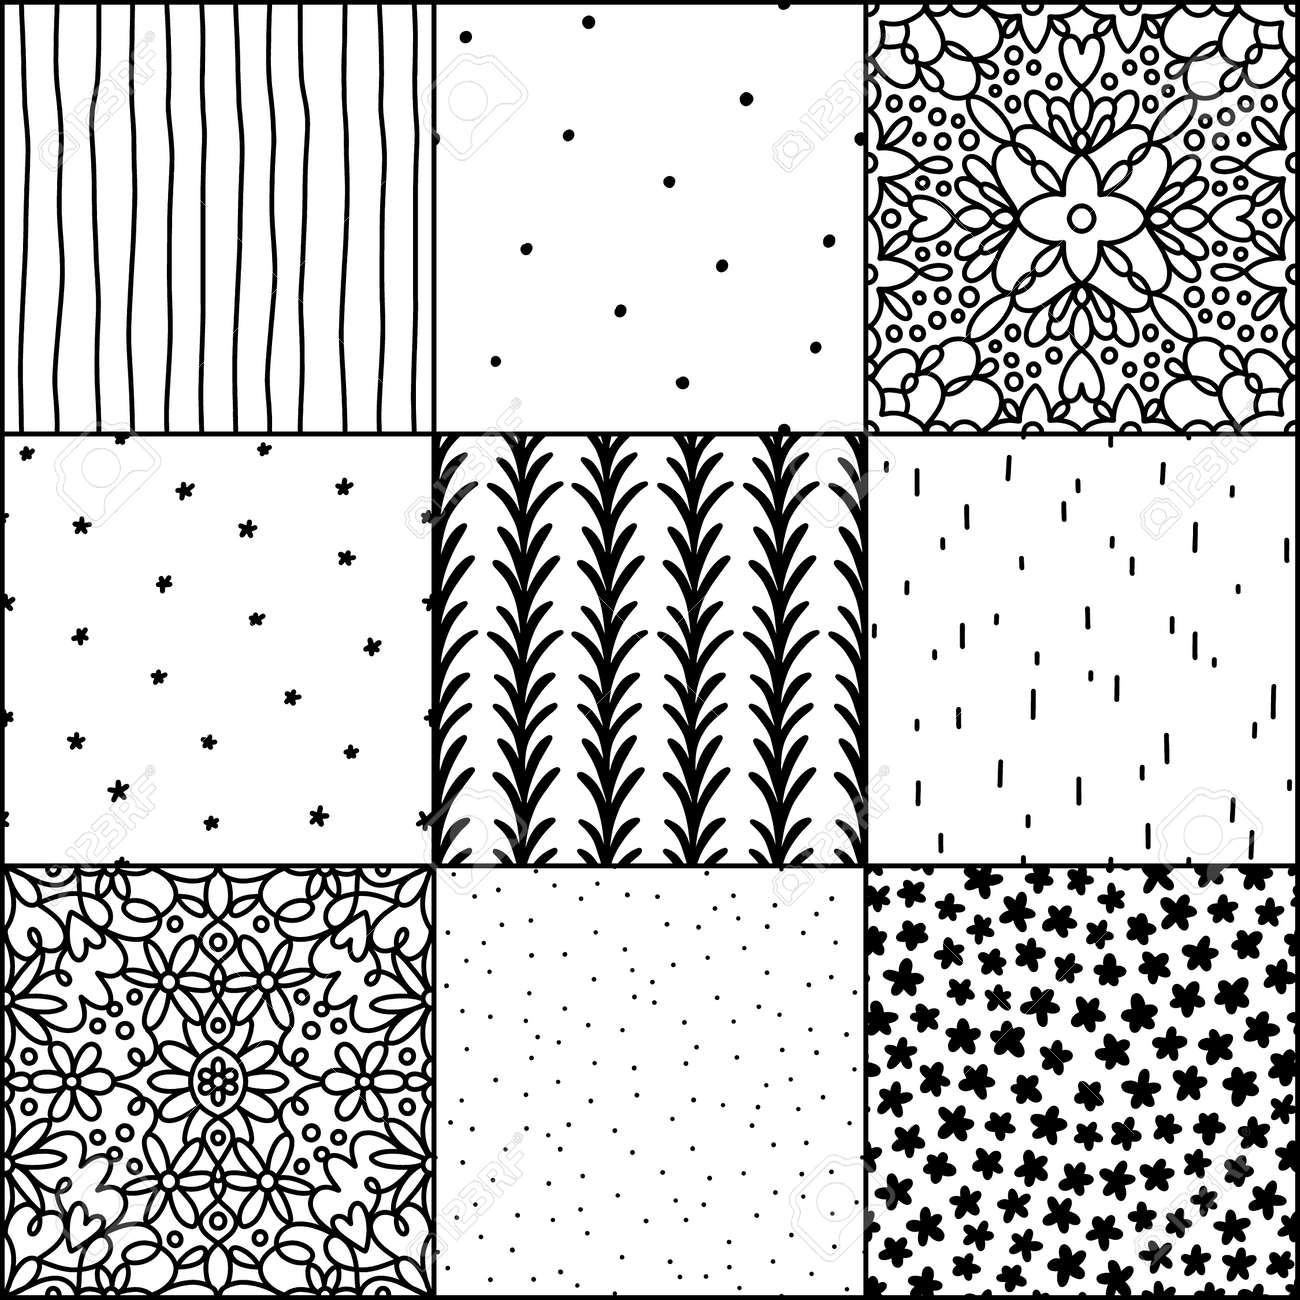 Black and white abstract and simple doodle seamless patterns collection, repeat backgrounds - 164565487